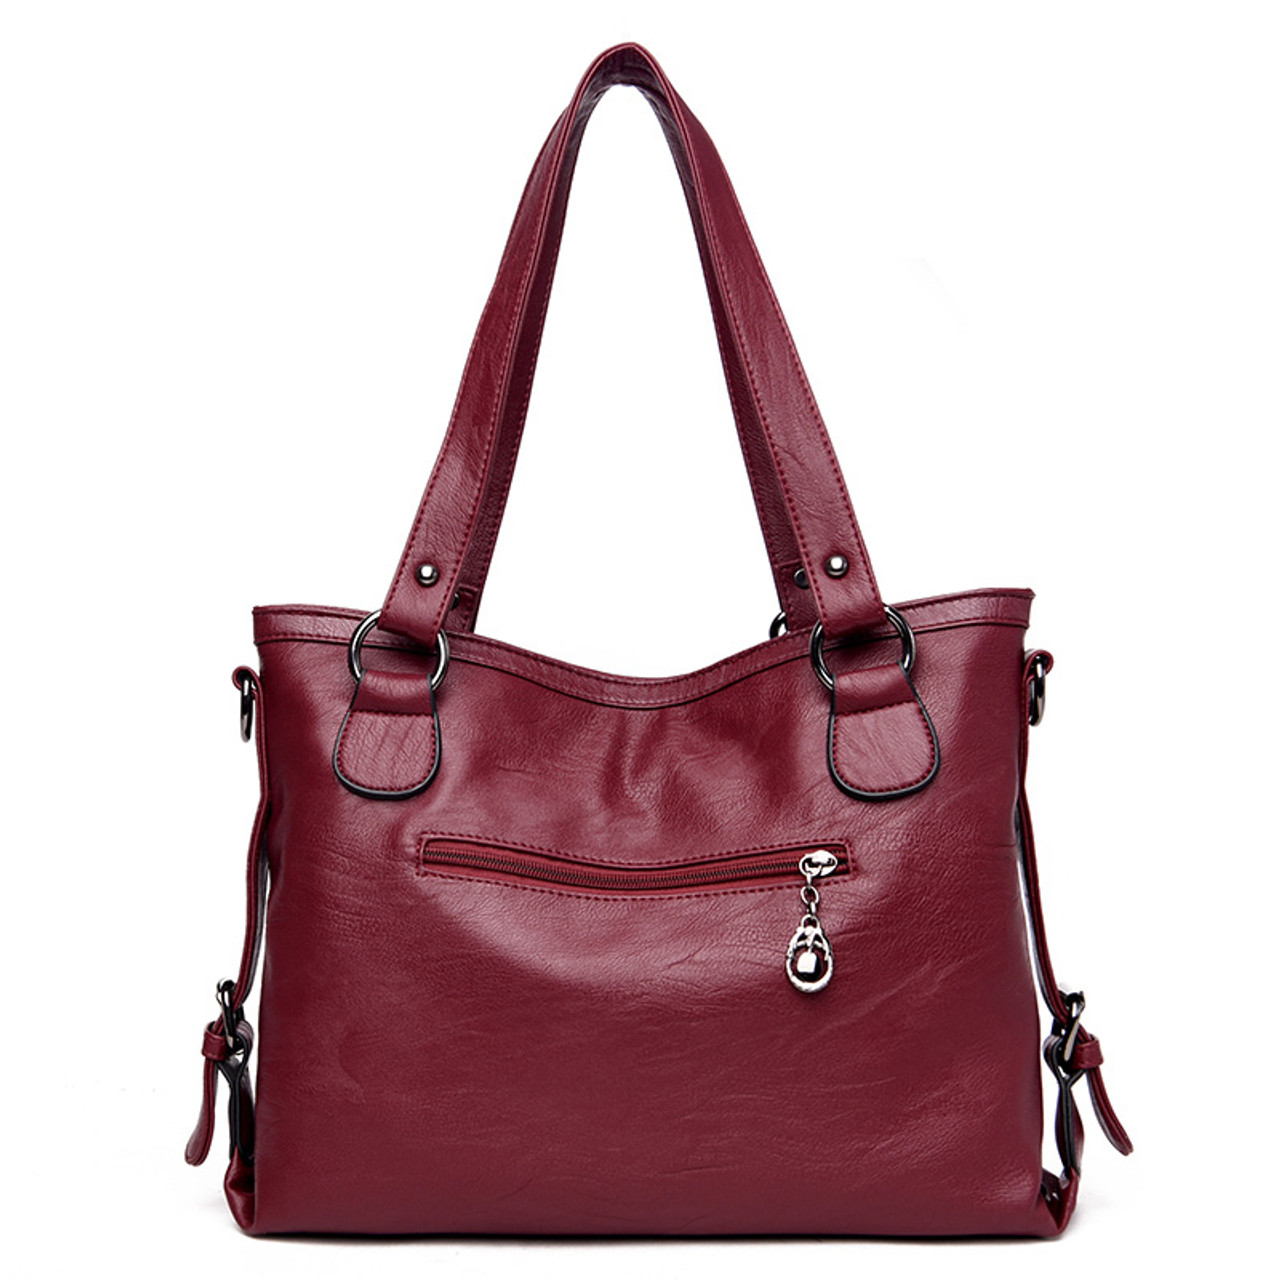 ... New 2017 Fashion PU Leather Women Messenger Bags Ladies Big Casual  Shoulder Bags Brand Woman Handbags ... 4e71c2d094